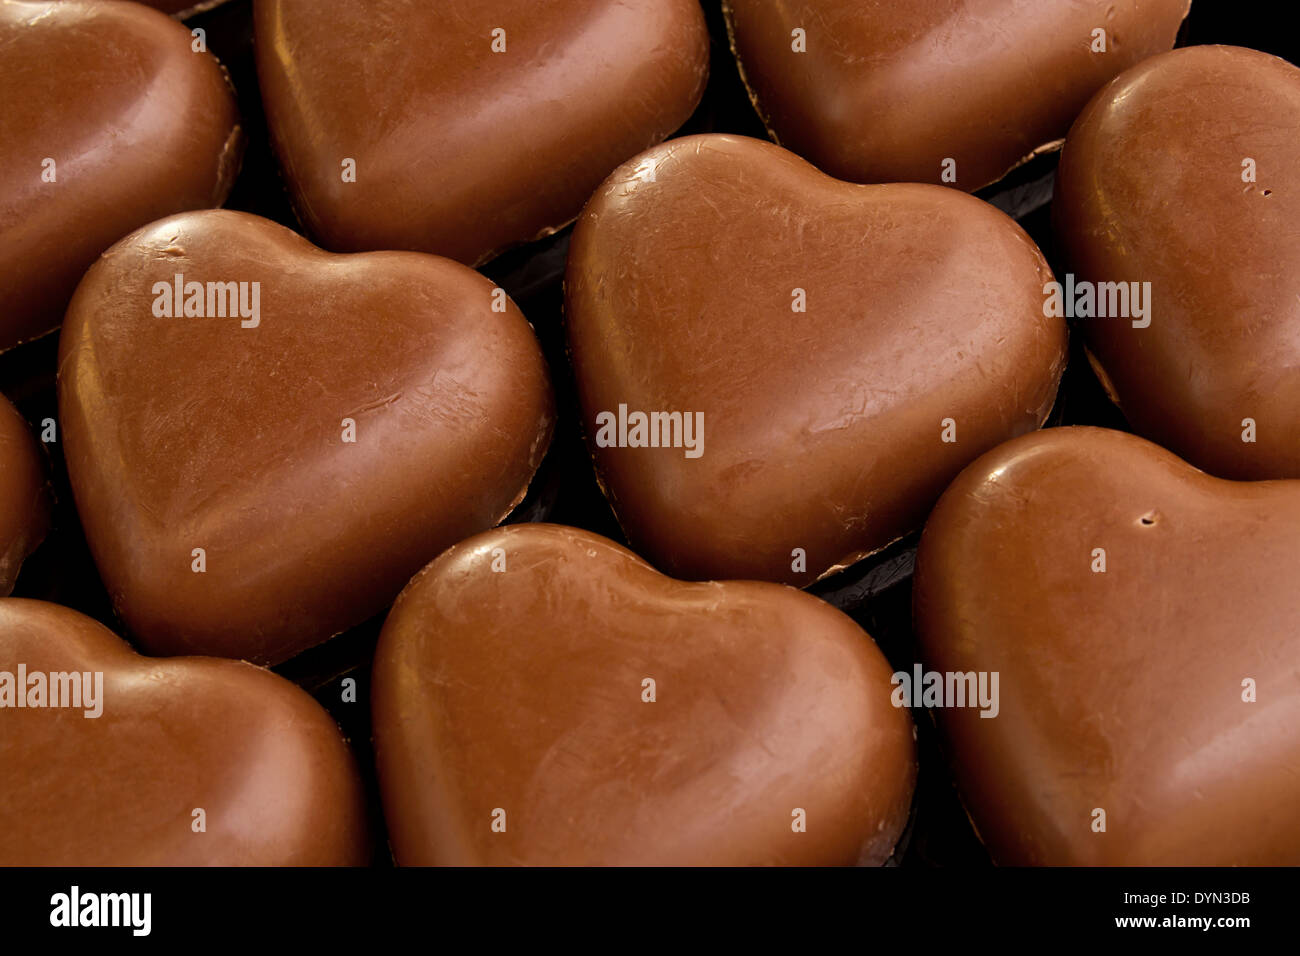 Chocolate love hearts a great Valentines day gift - Stock Image